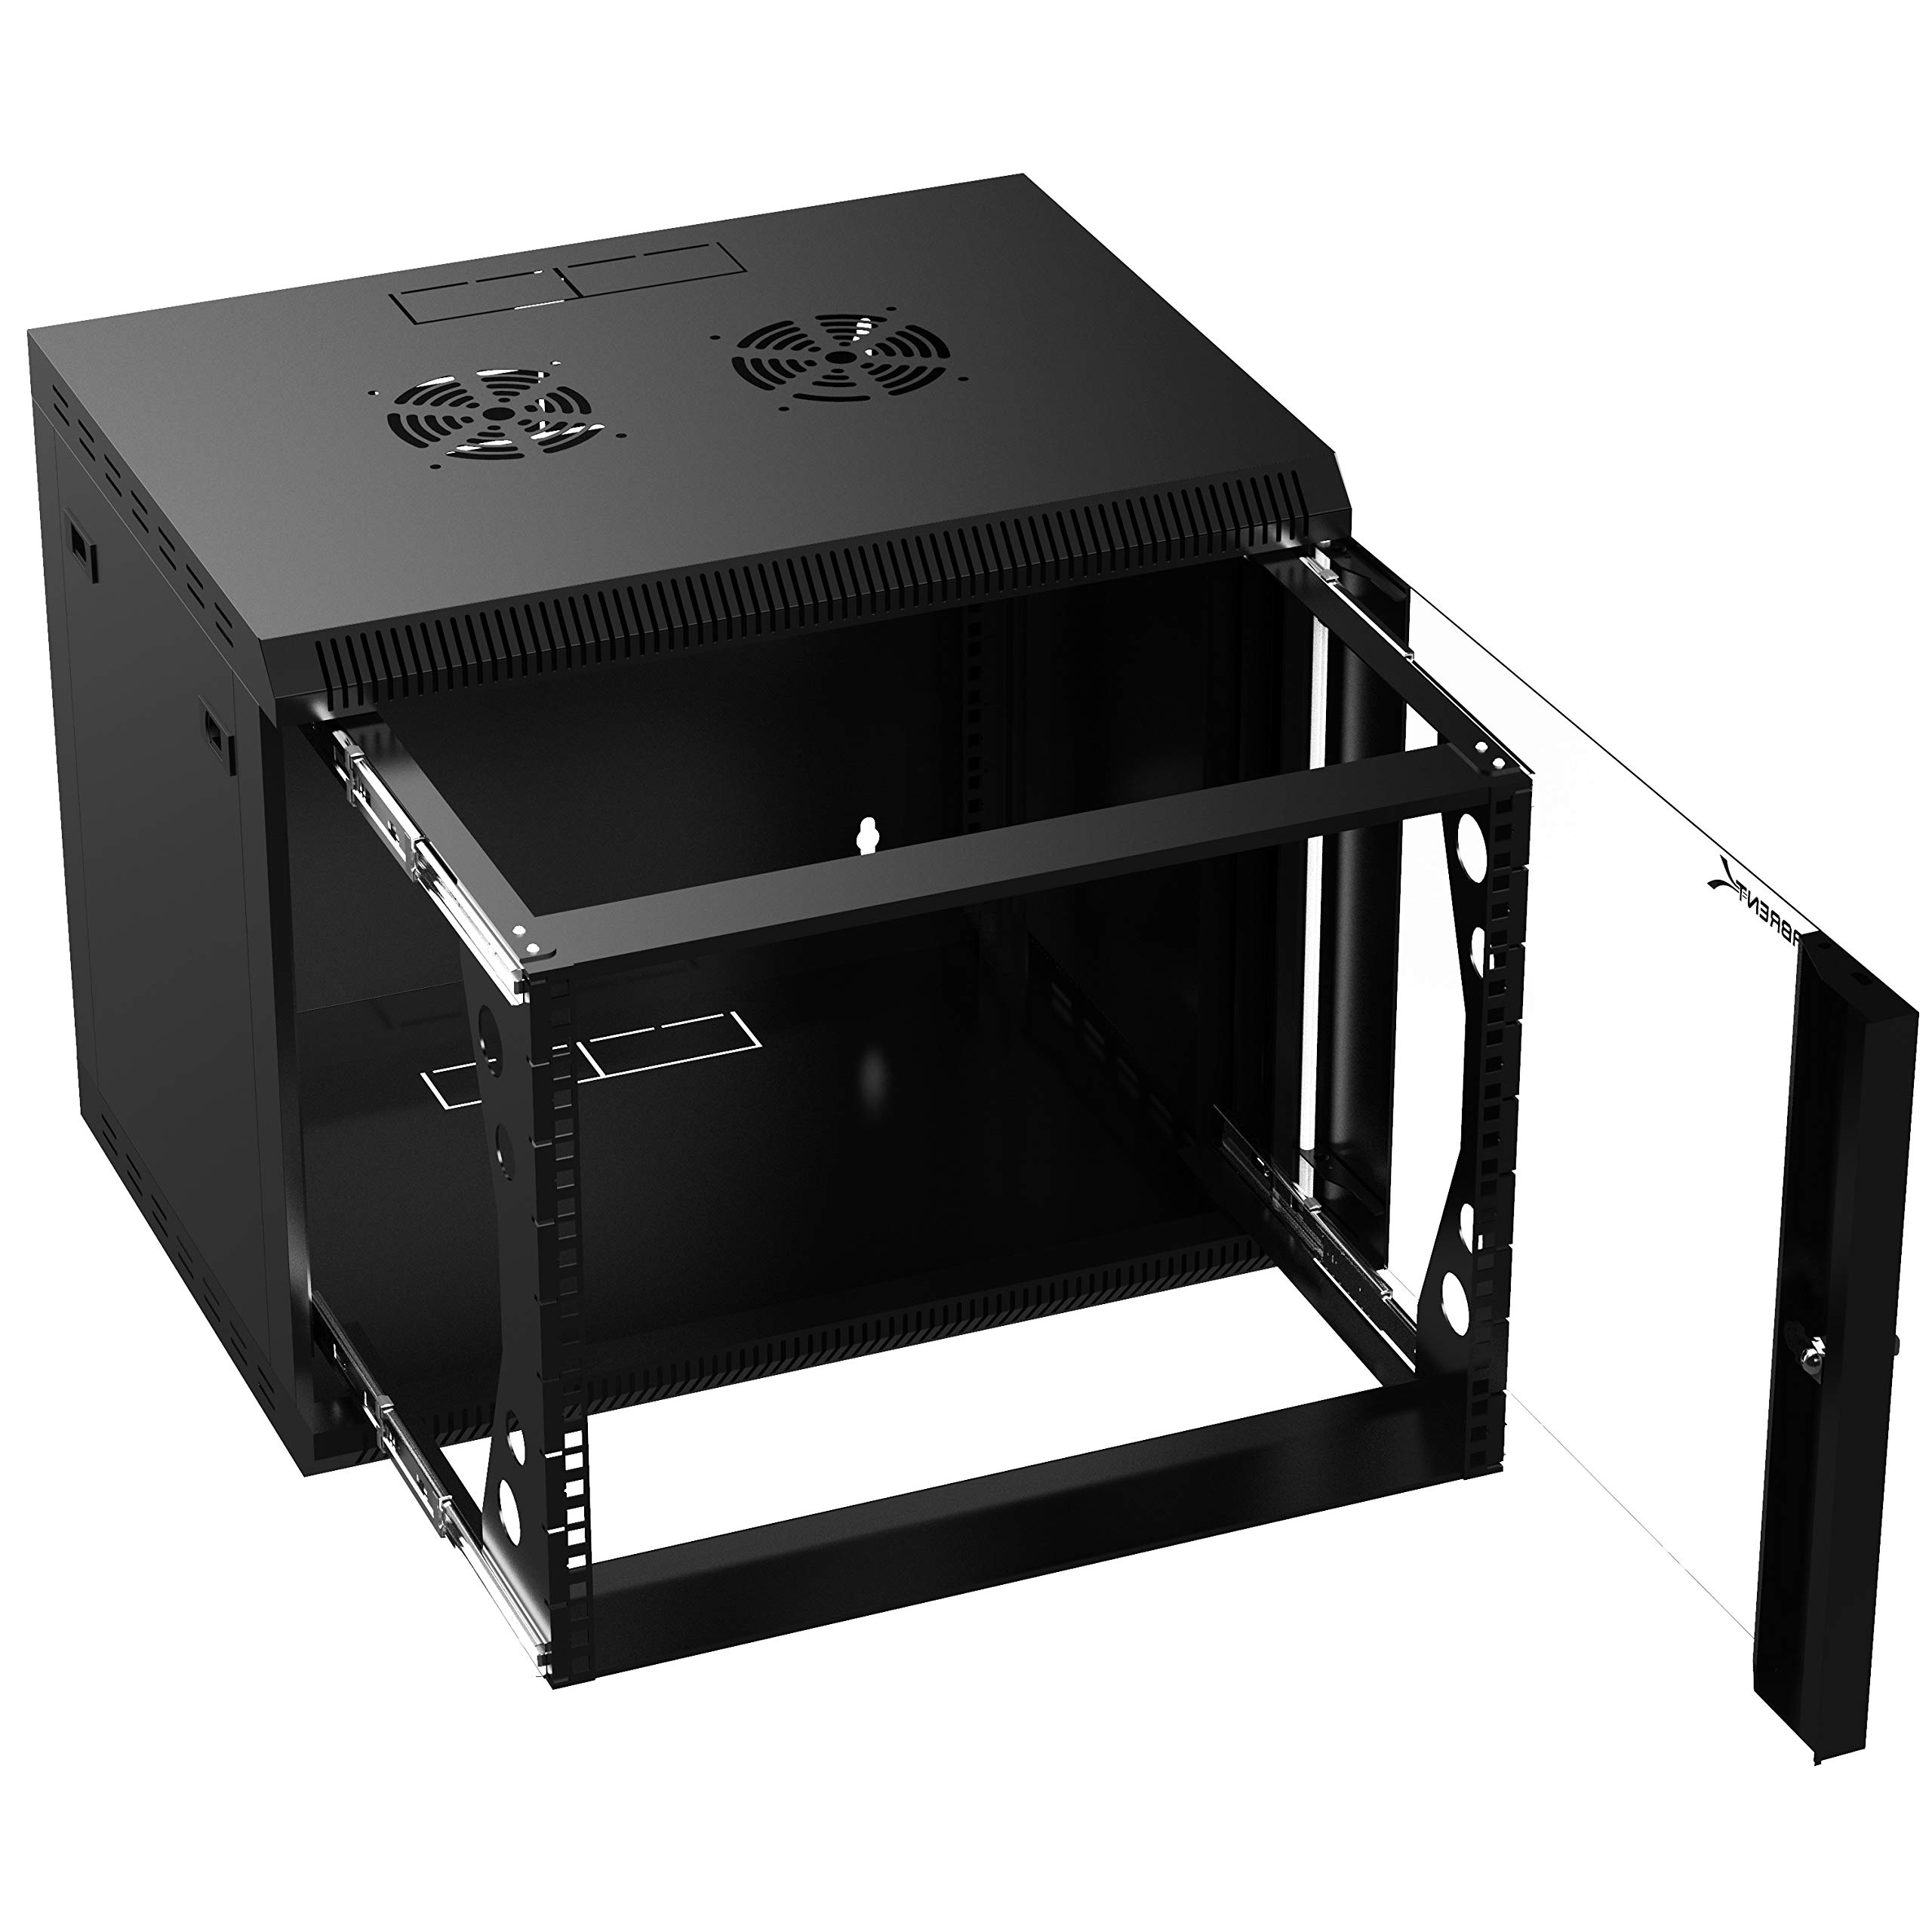 Sabrent 9U It Wall Mount Rack Enclosure 19 Inch Black Server Cabinet with Locking Glass Door and Pull-Out Drawer - Fully Assembled (CT-POWG)